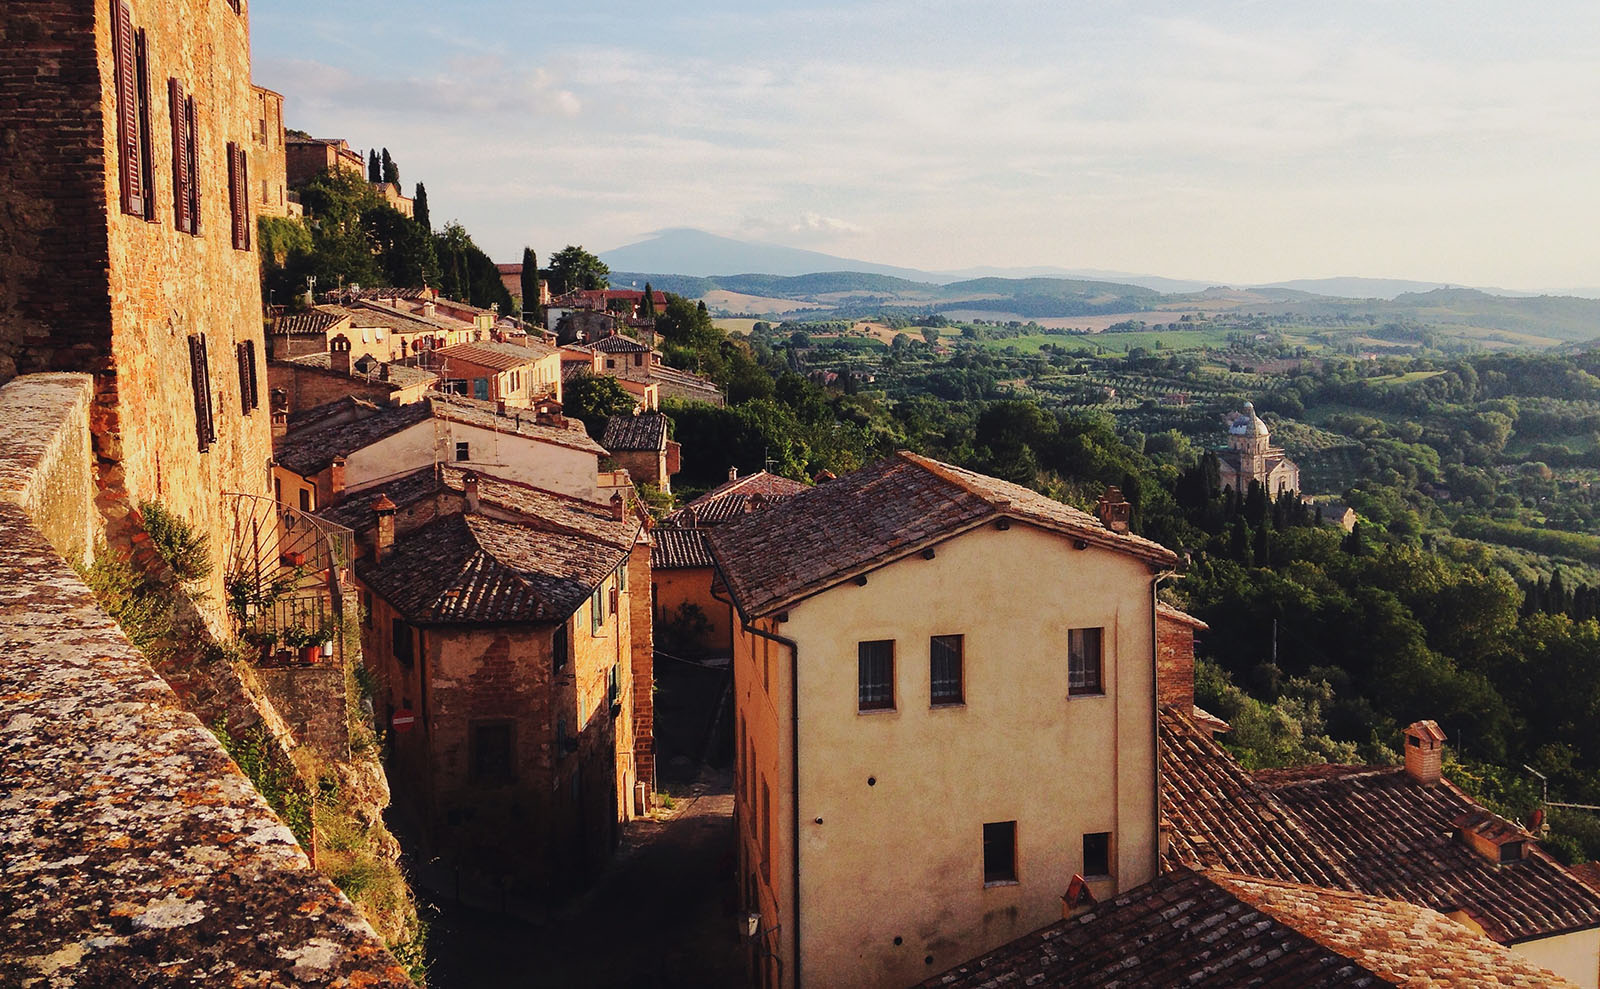 houses on the hillside in Montepulciano, Italy